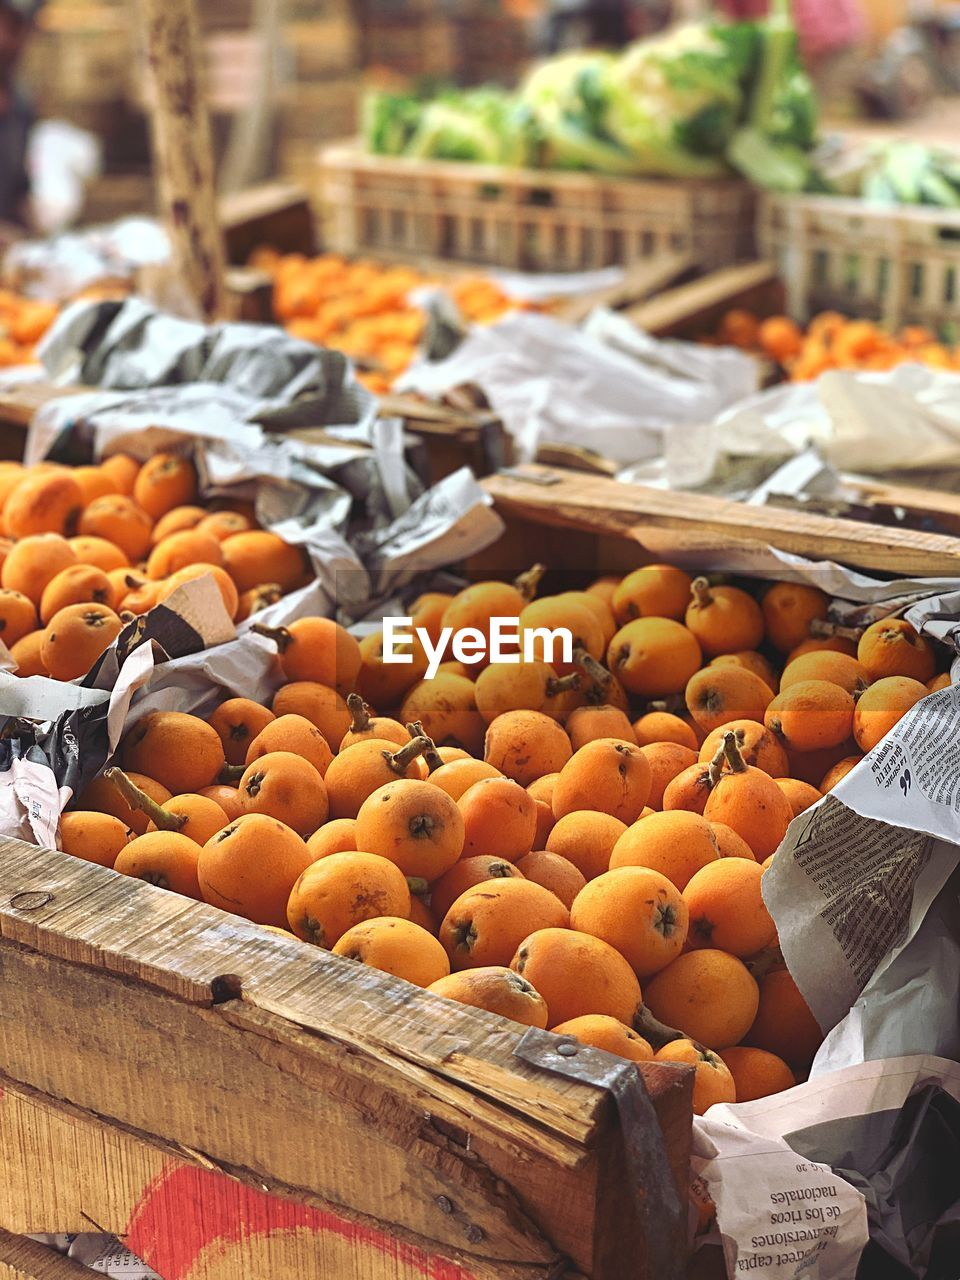 food and drink, food, orange color, healthy eating, large group of objects, for sale, market, freshness, fruit, market stall, abundance, container, retail, no people, day, vegetable, wellbeing, sale, focus on foreground, sunlight, outdoors, orange, retail display